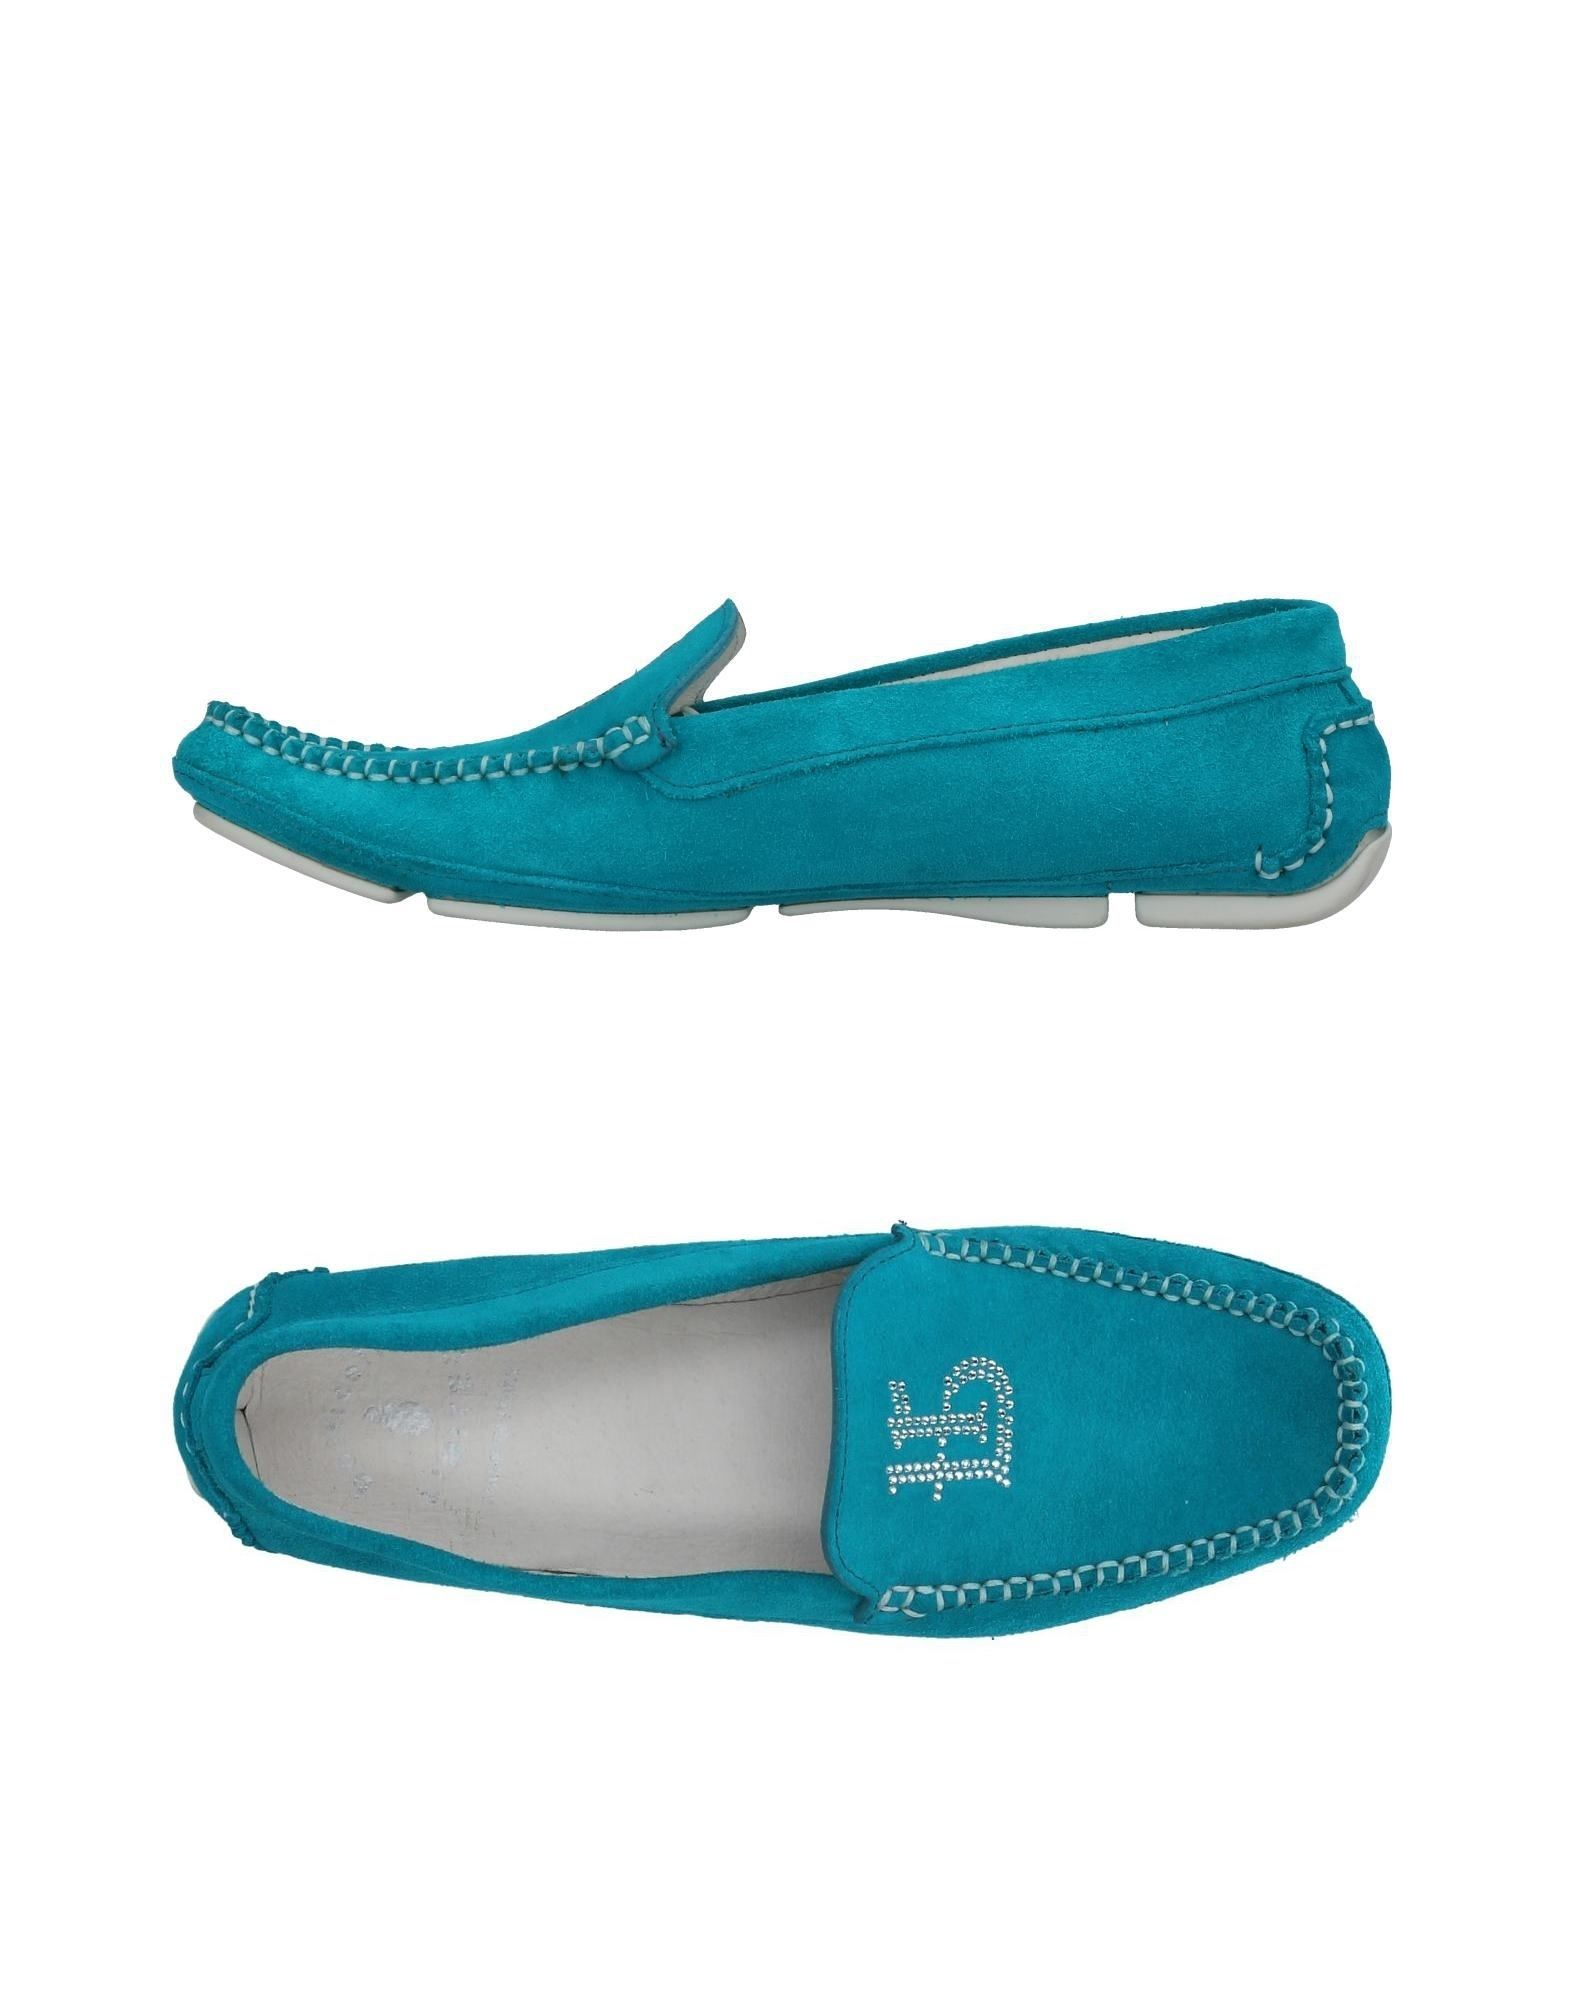 Loafers & Slip-Ons - Buy Best Loafers & Slip-Ons from Fashion Influencers |  Brick & Portal